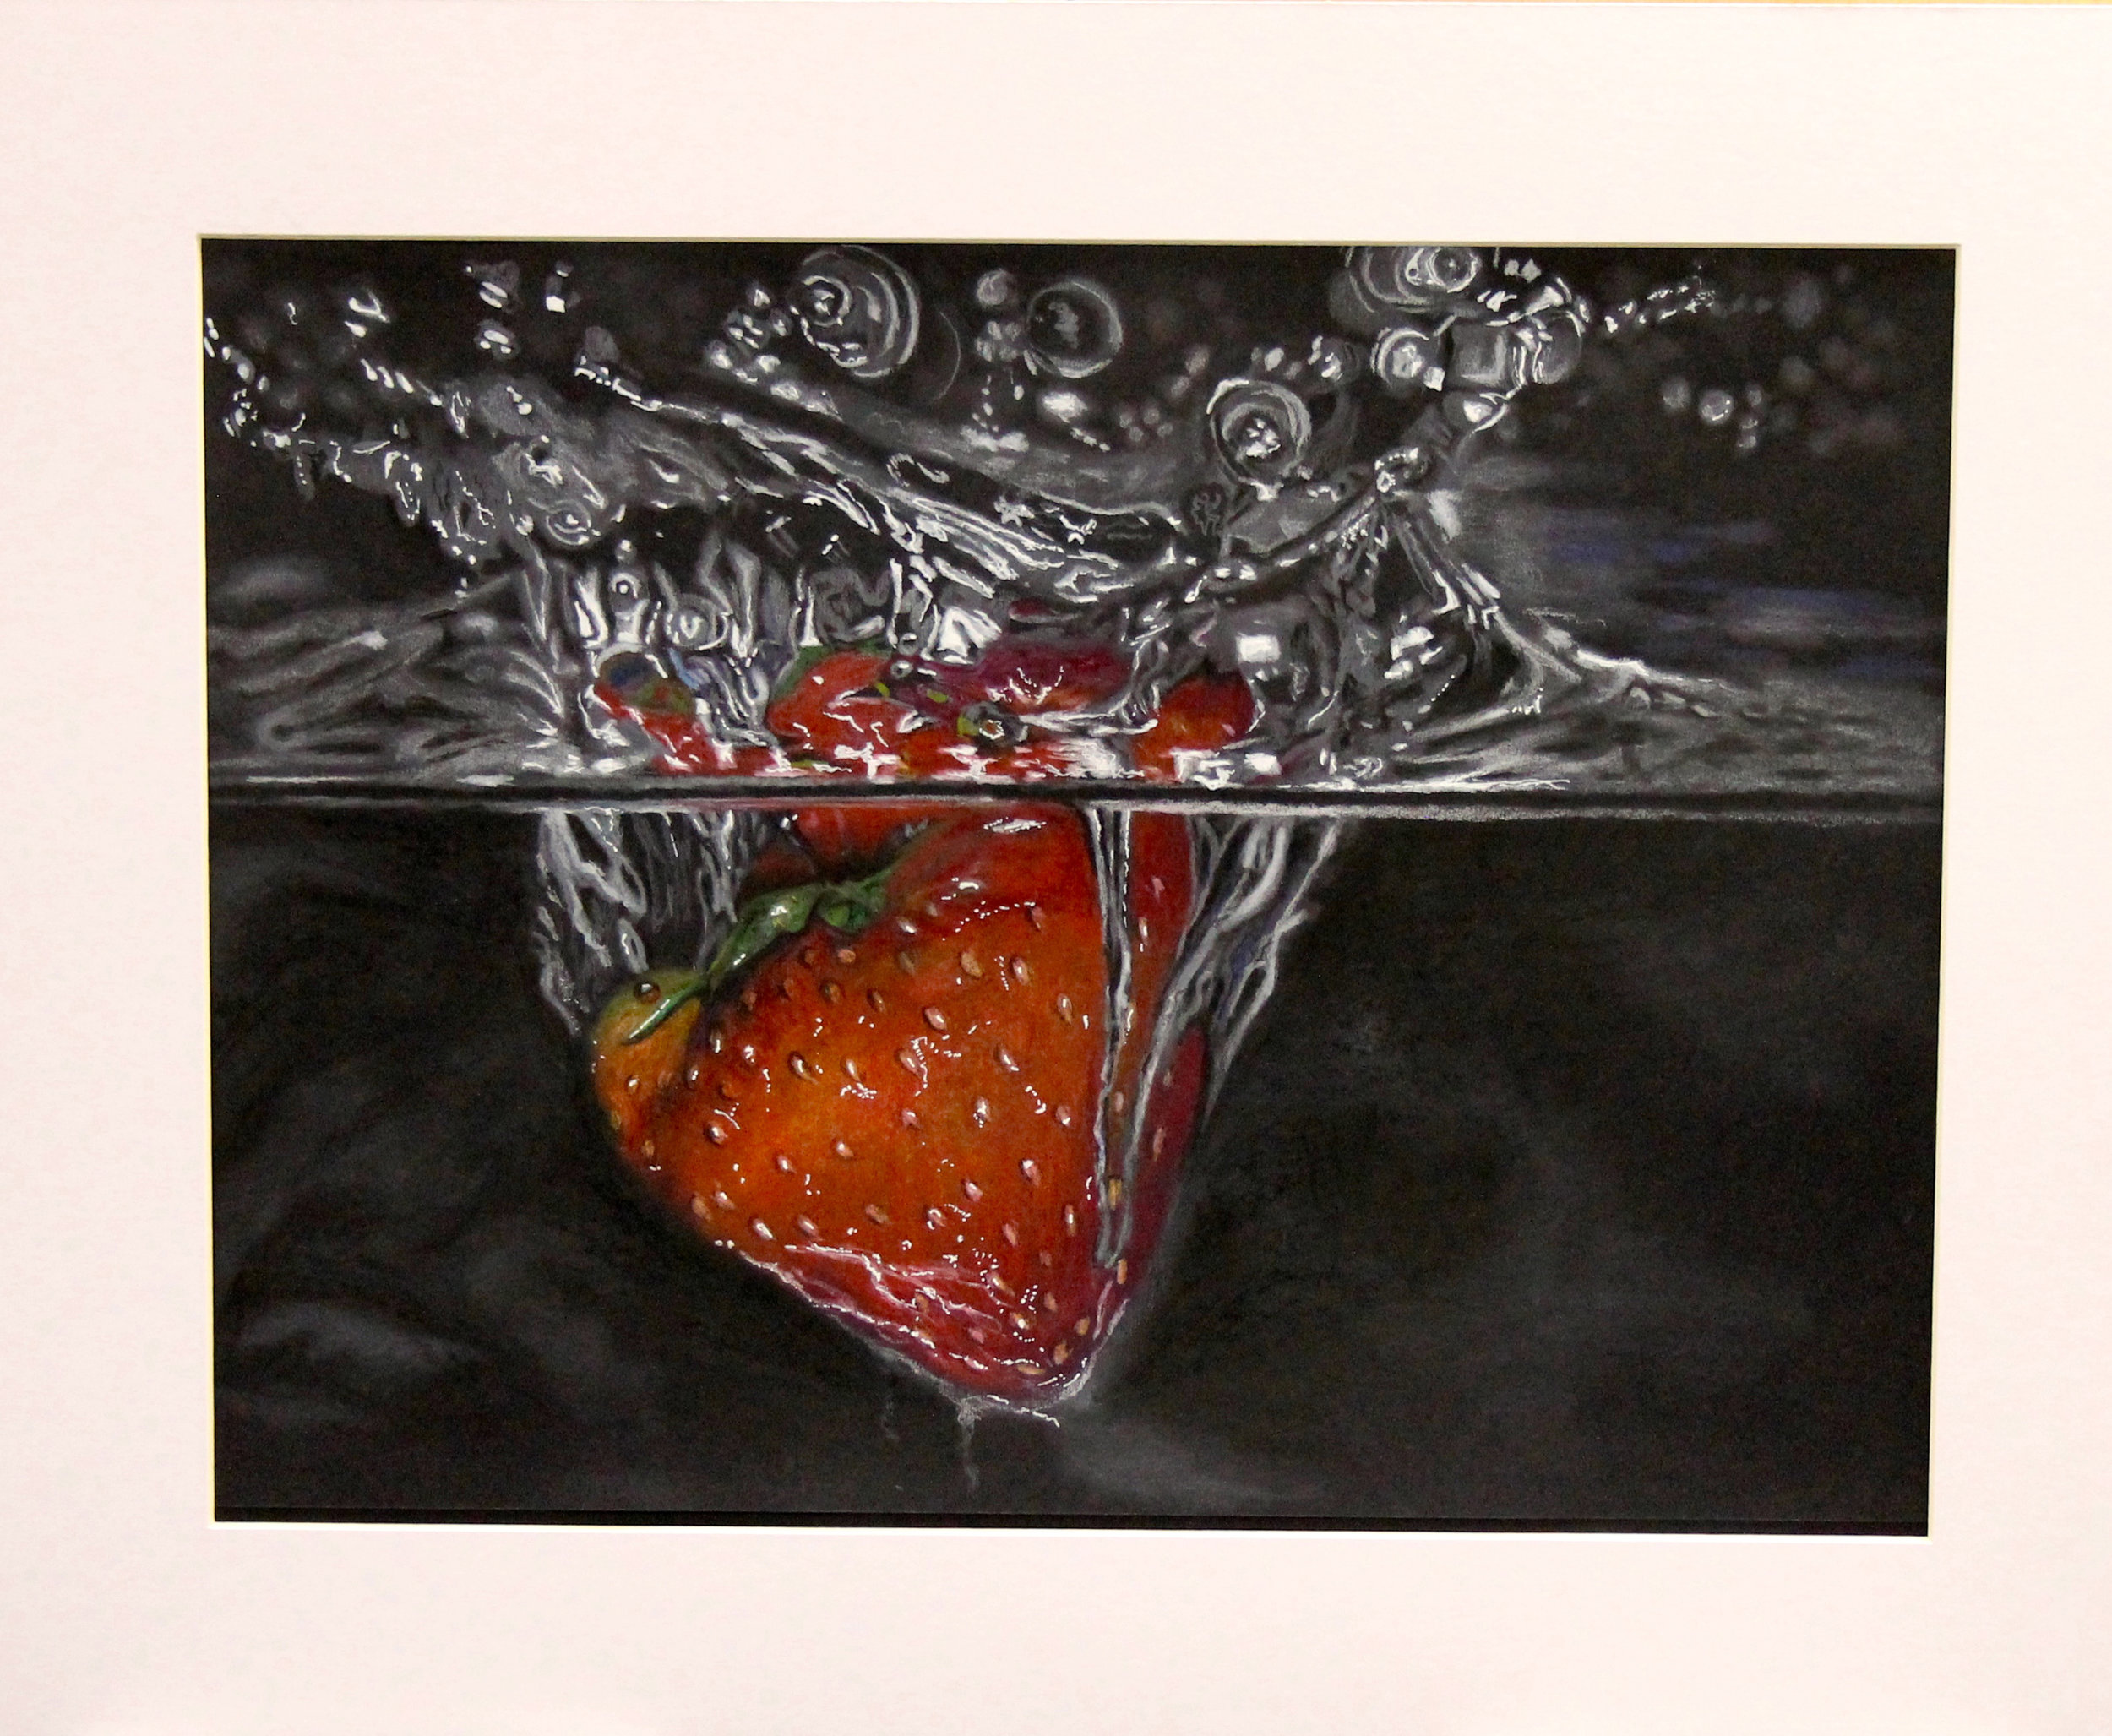 Strawberry in water: Coloured, 2016. Pencil on black paper. 43 x 53 cm